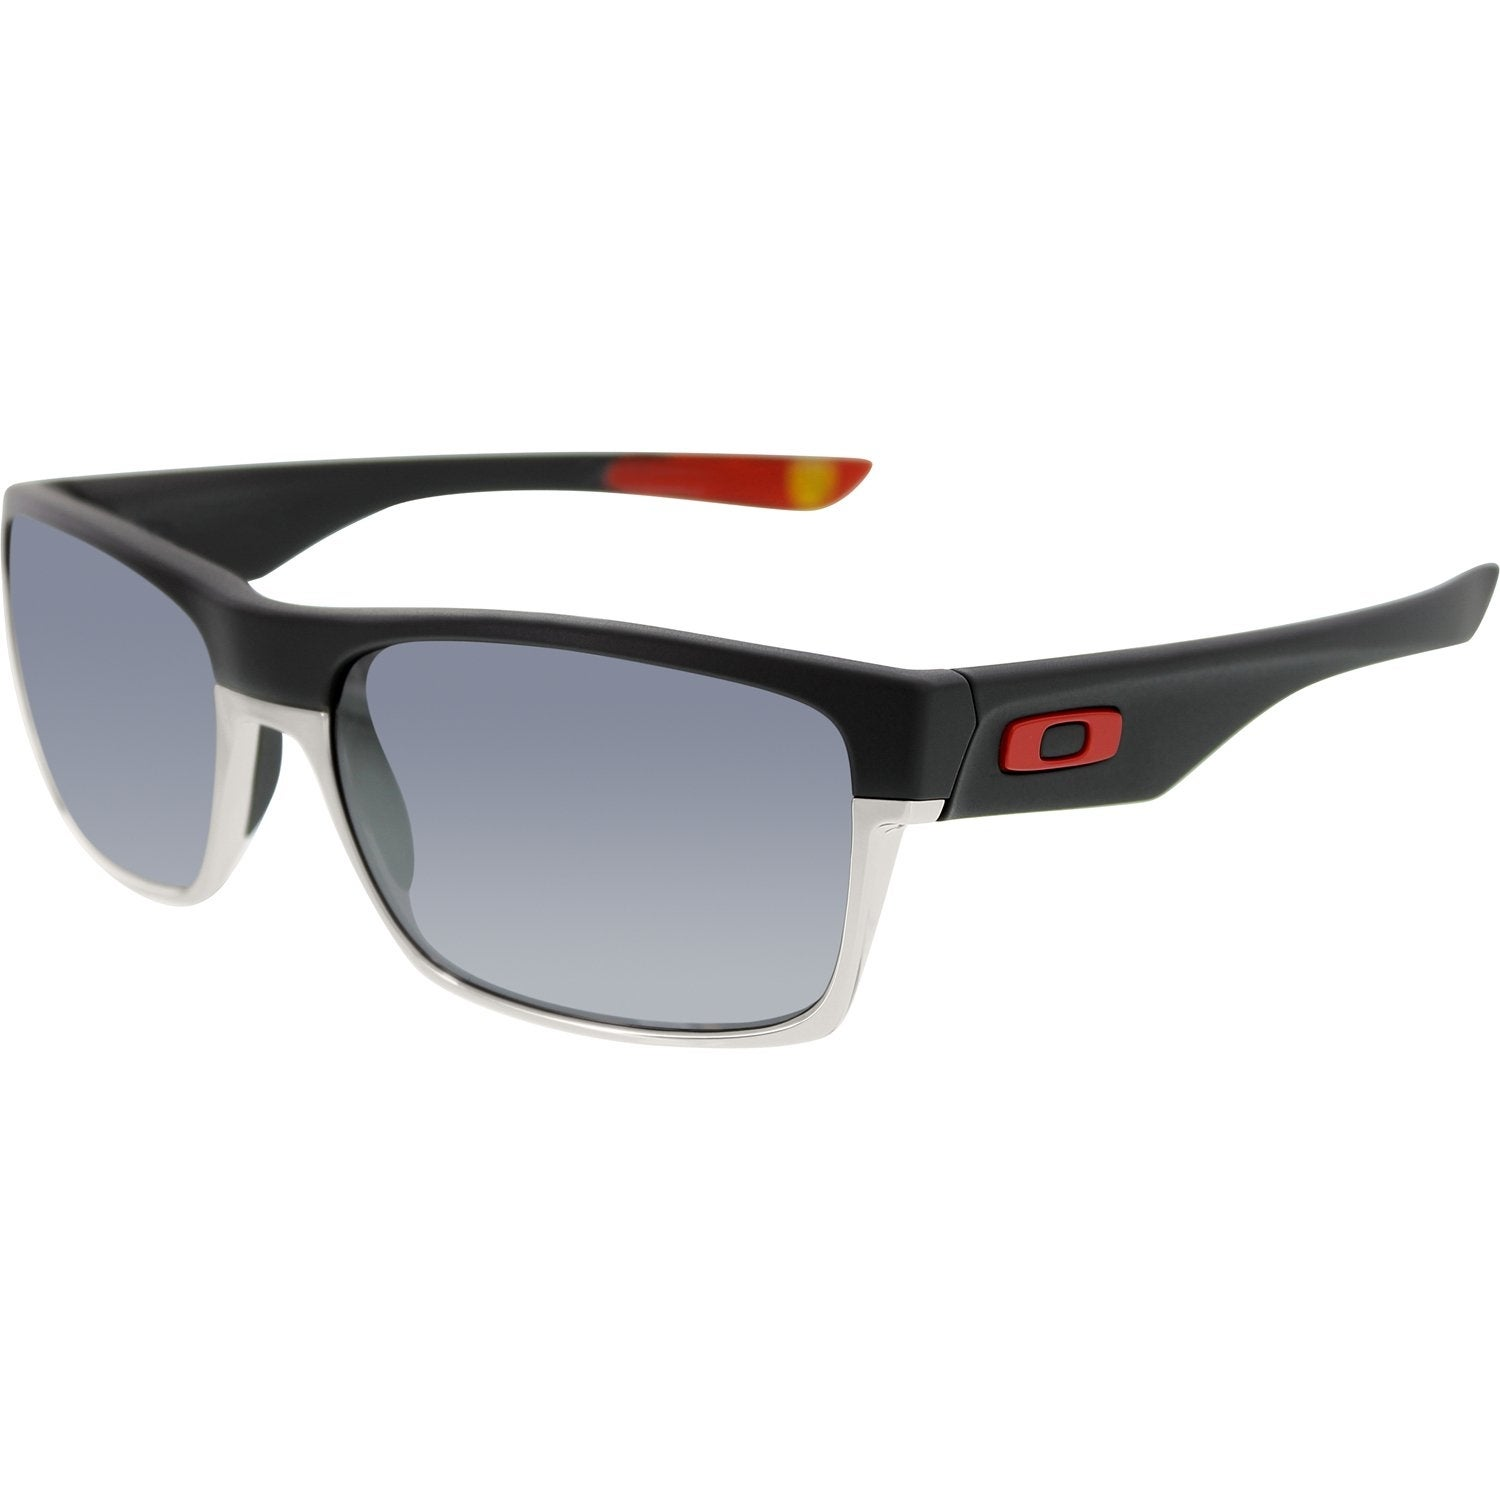 50b41f9102 Shop Oakley Men s Twoface OO9189-20 Black Rectangle Sunglasses - Free  Shipping Today - Overstock.com - 18914786